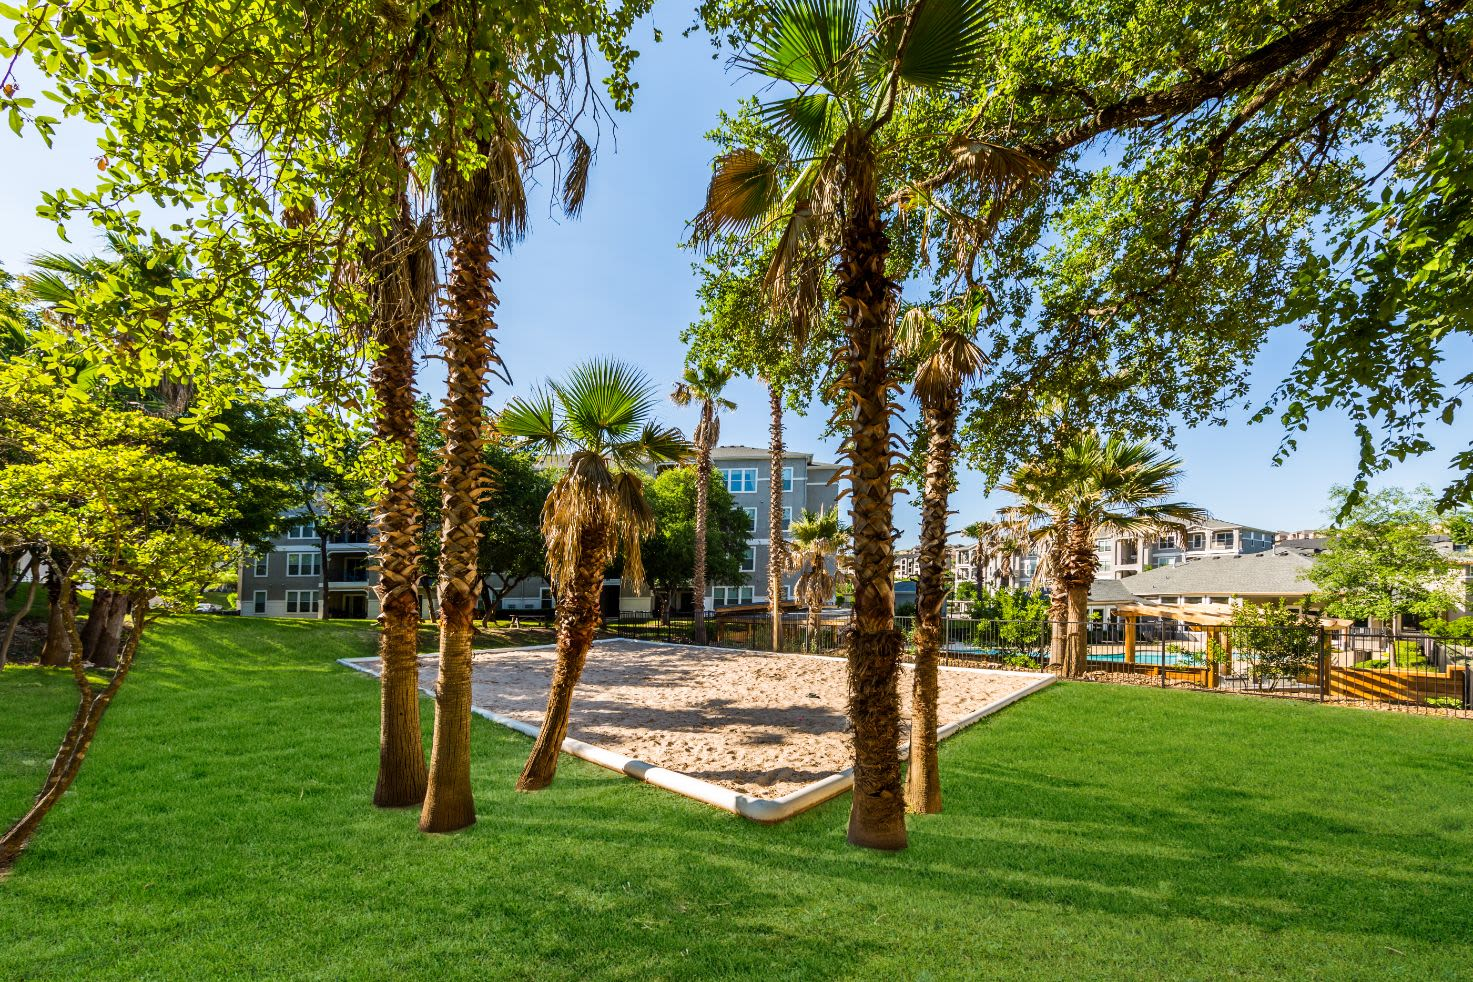 Outdoor sand court nestled between palm trees at Marquis at Crown Ridge in San Antonio, Texas